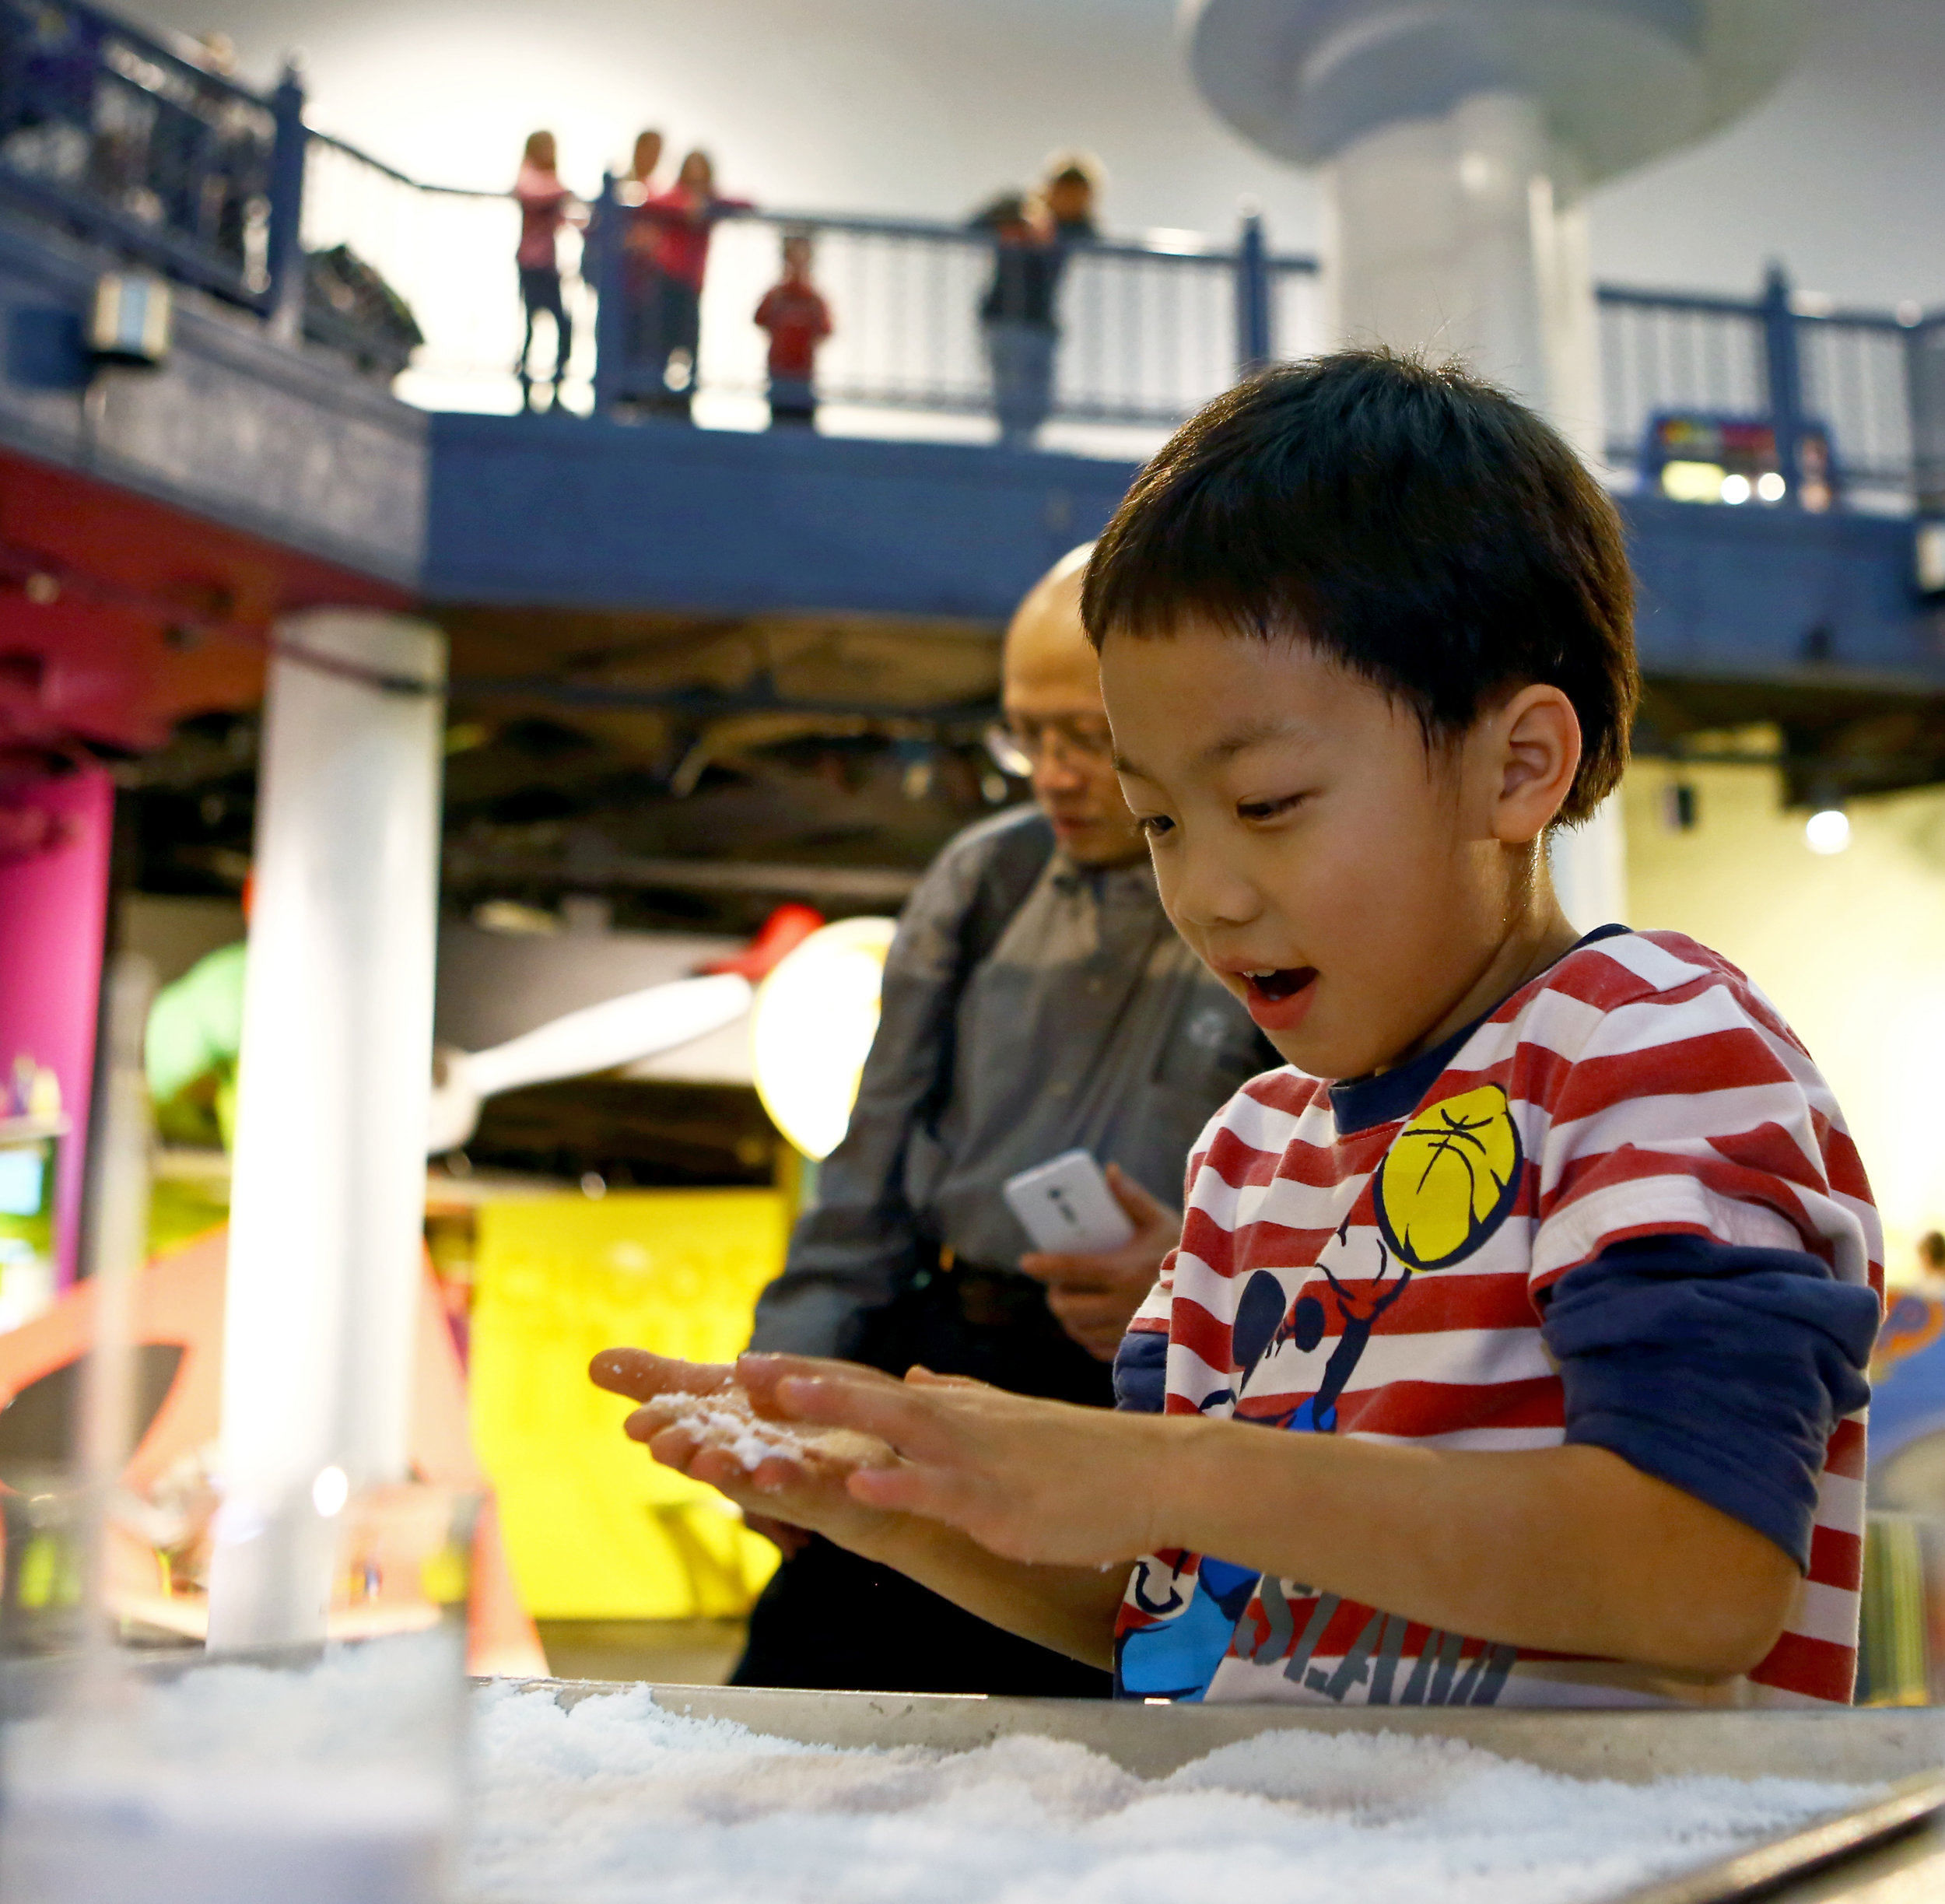 """Neil Huang, 8, of Findlay plays with the """"insta-snow"""" at the annual Frostology exhibit put on by the Imagination Station in downtown Toledo, Oh. on Monday, Dec. 26, 2016. The Frostology exhibit explores the science behind snow using demonstrations and activities."""